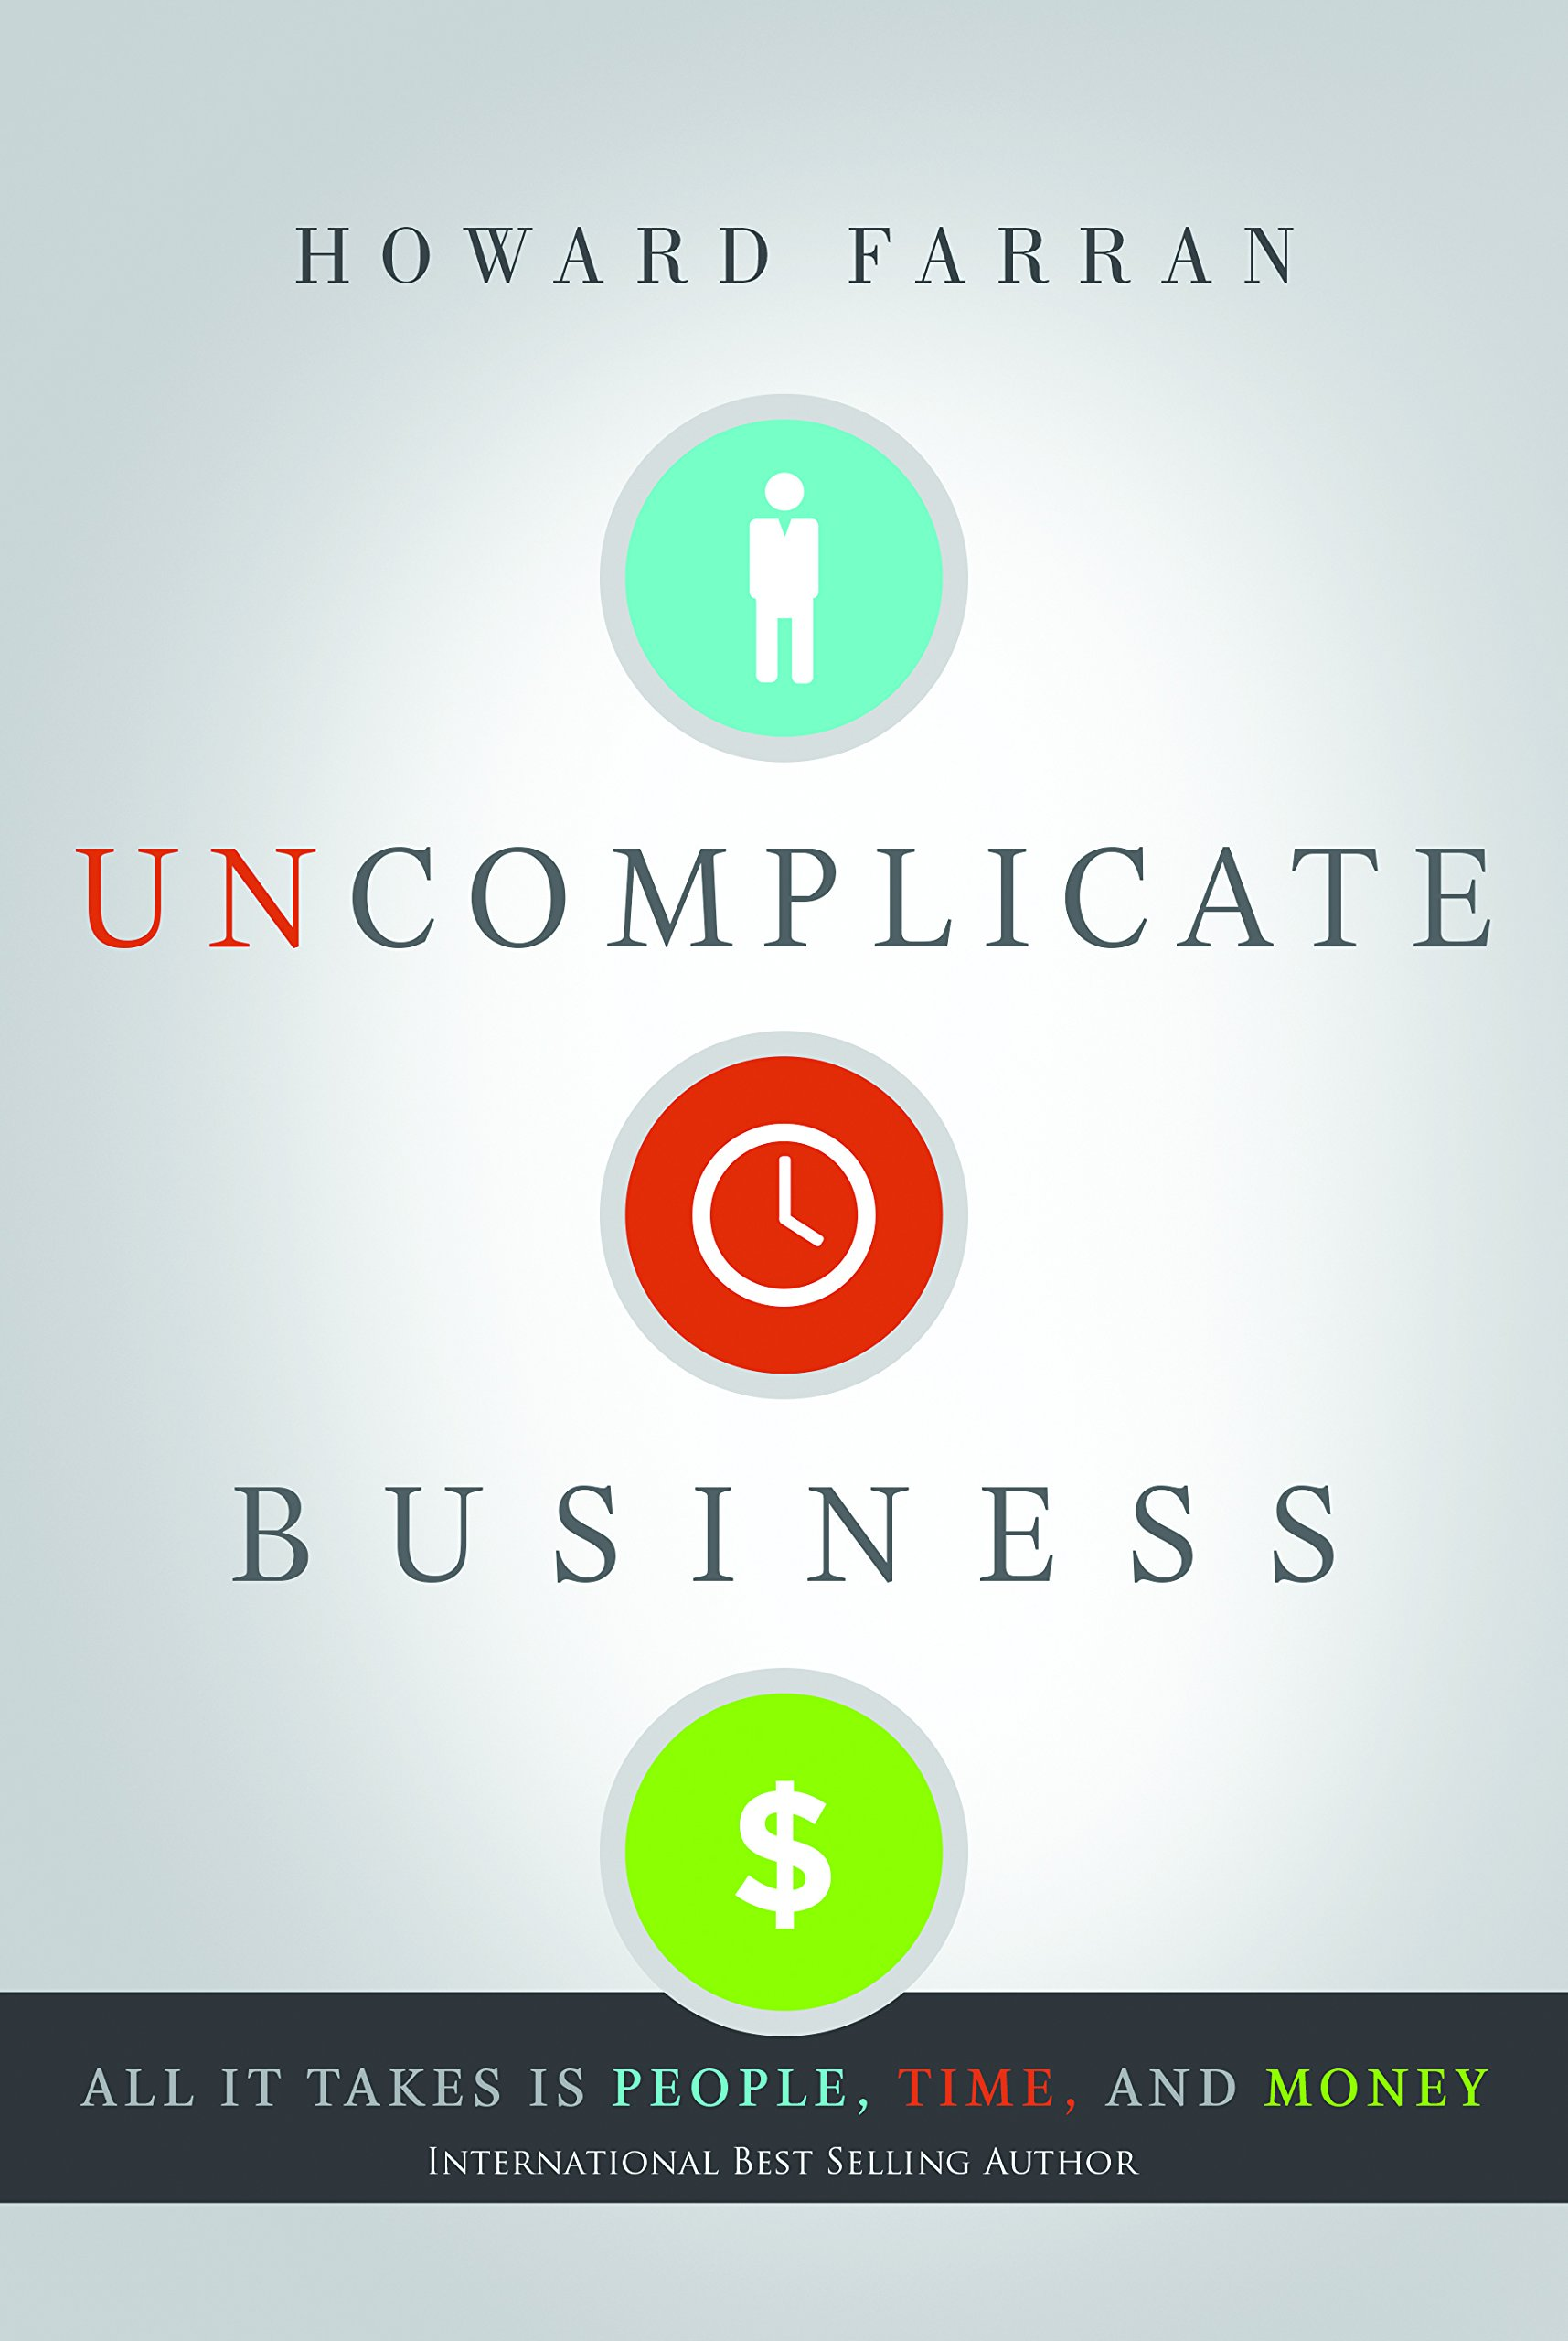 Uncomplicate Business Takes People Money product image